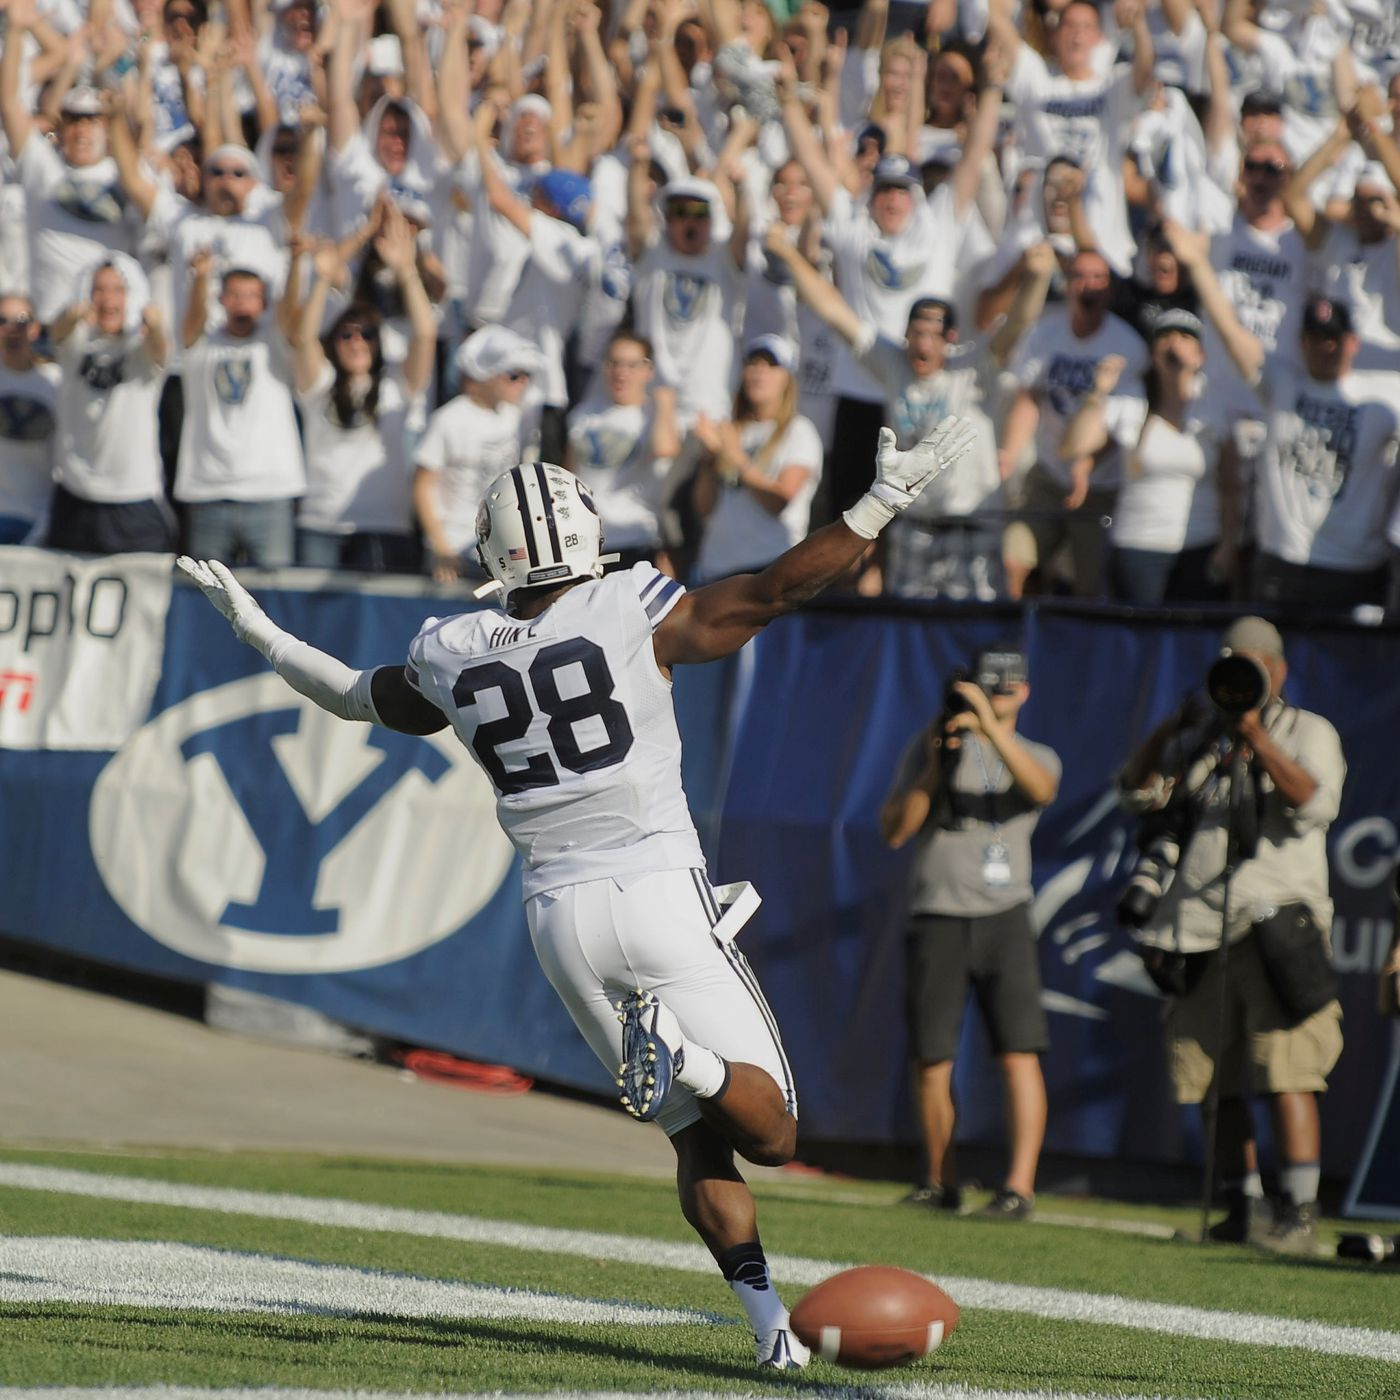 How The College Football Playoff Gave Byu New Power Sbnation Com